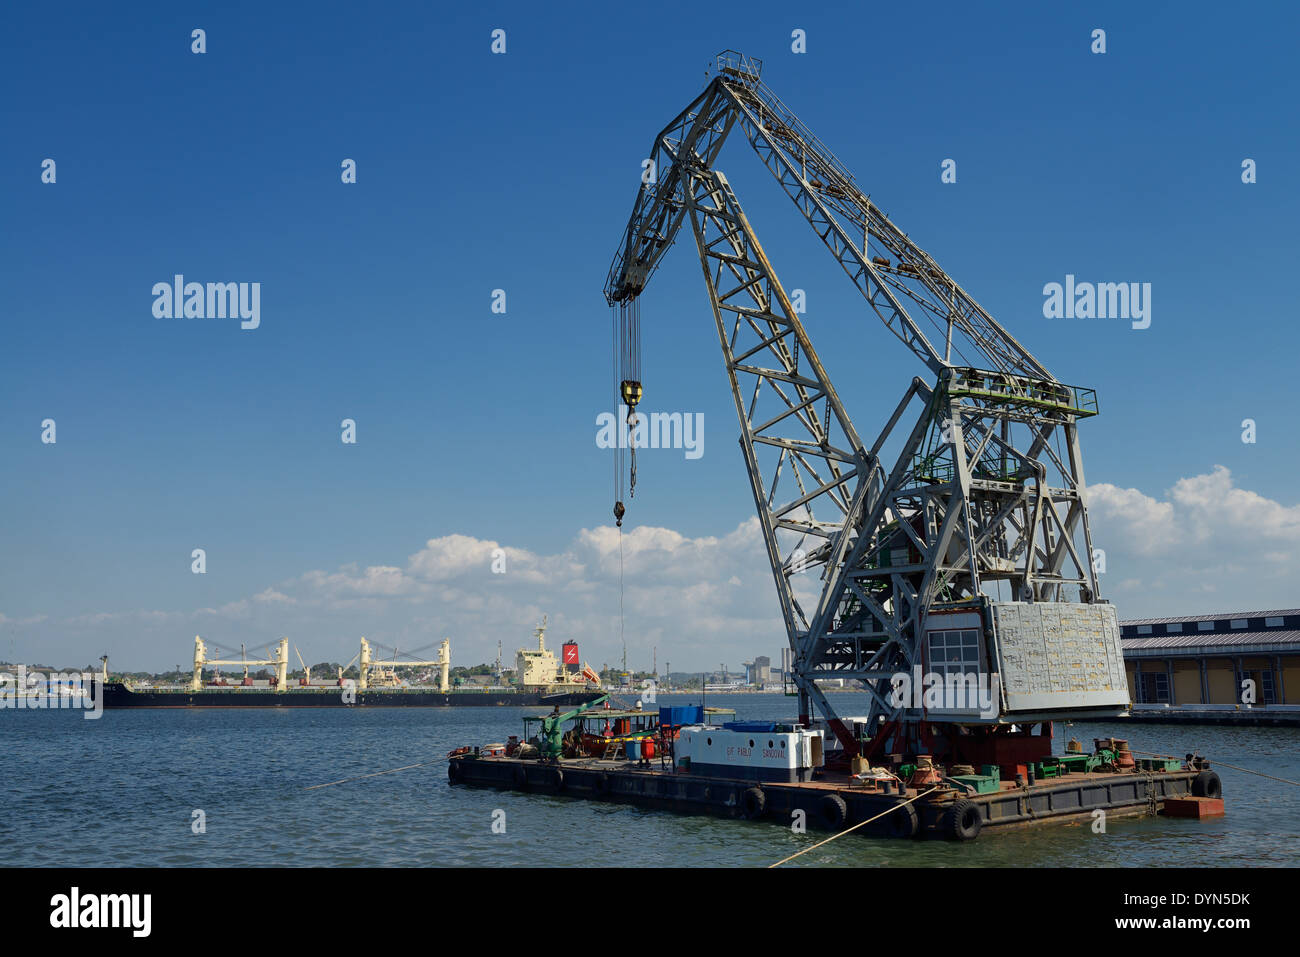 Crane barge and freighter in Havana Bay Harbor Cuba with blue sky - Stock Image